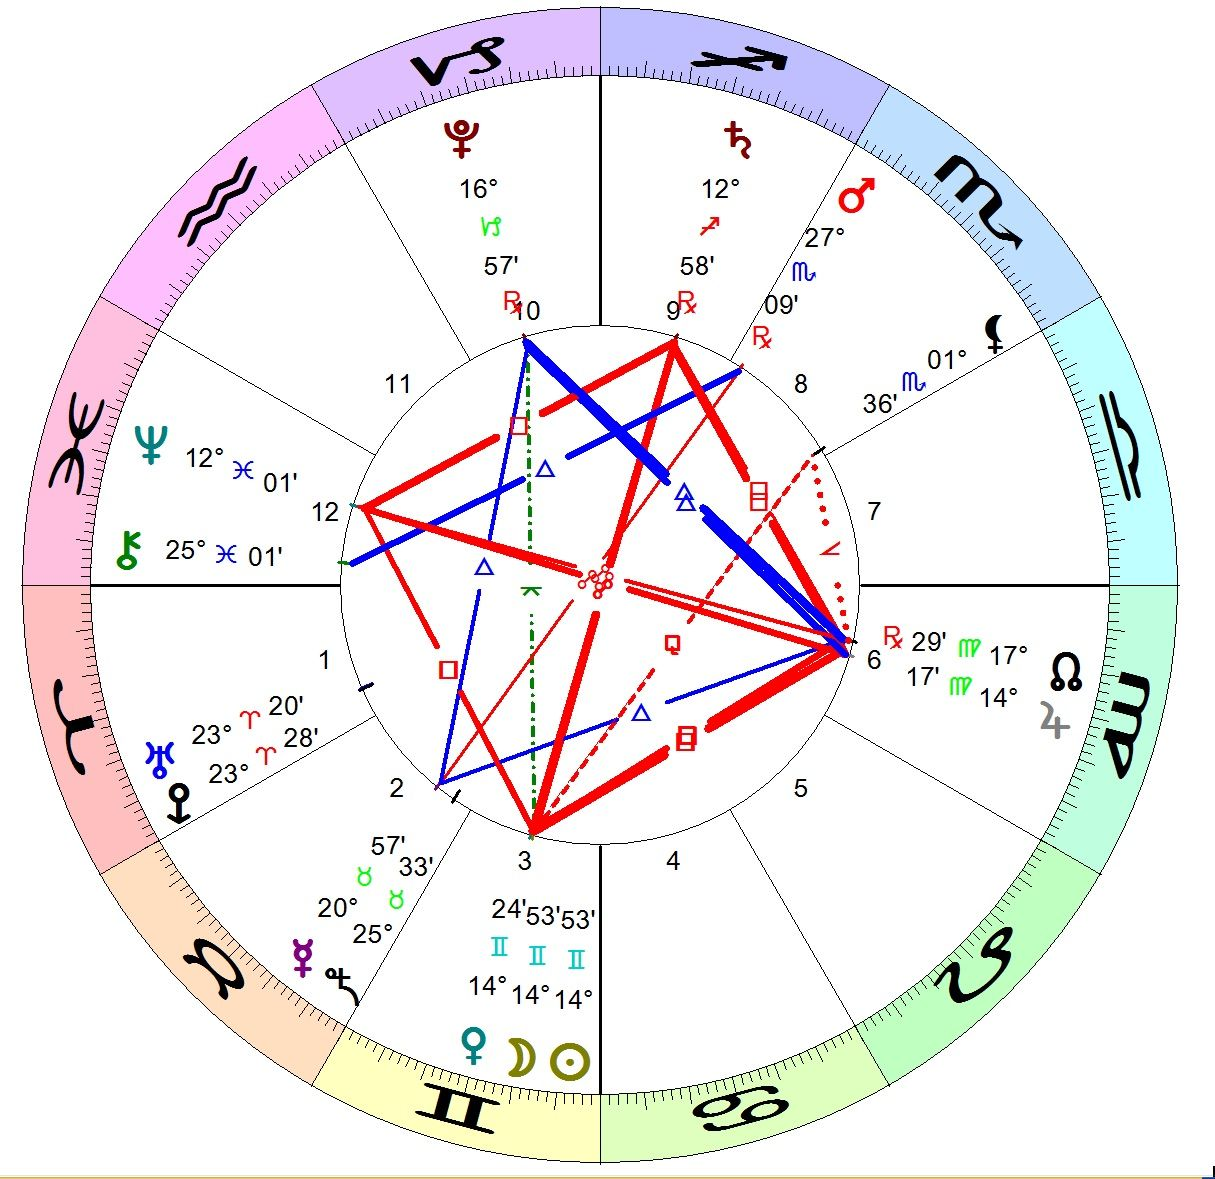 Birth chart marriage several websites offer free birth charts birth chart marriage several websites offer free birth charts readings namely gotohoroscope alabe 0800 horoscope freehoroscopesastrology ch nvjuhfo Gallery